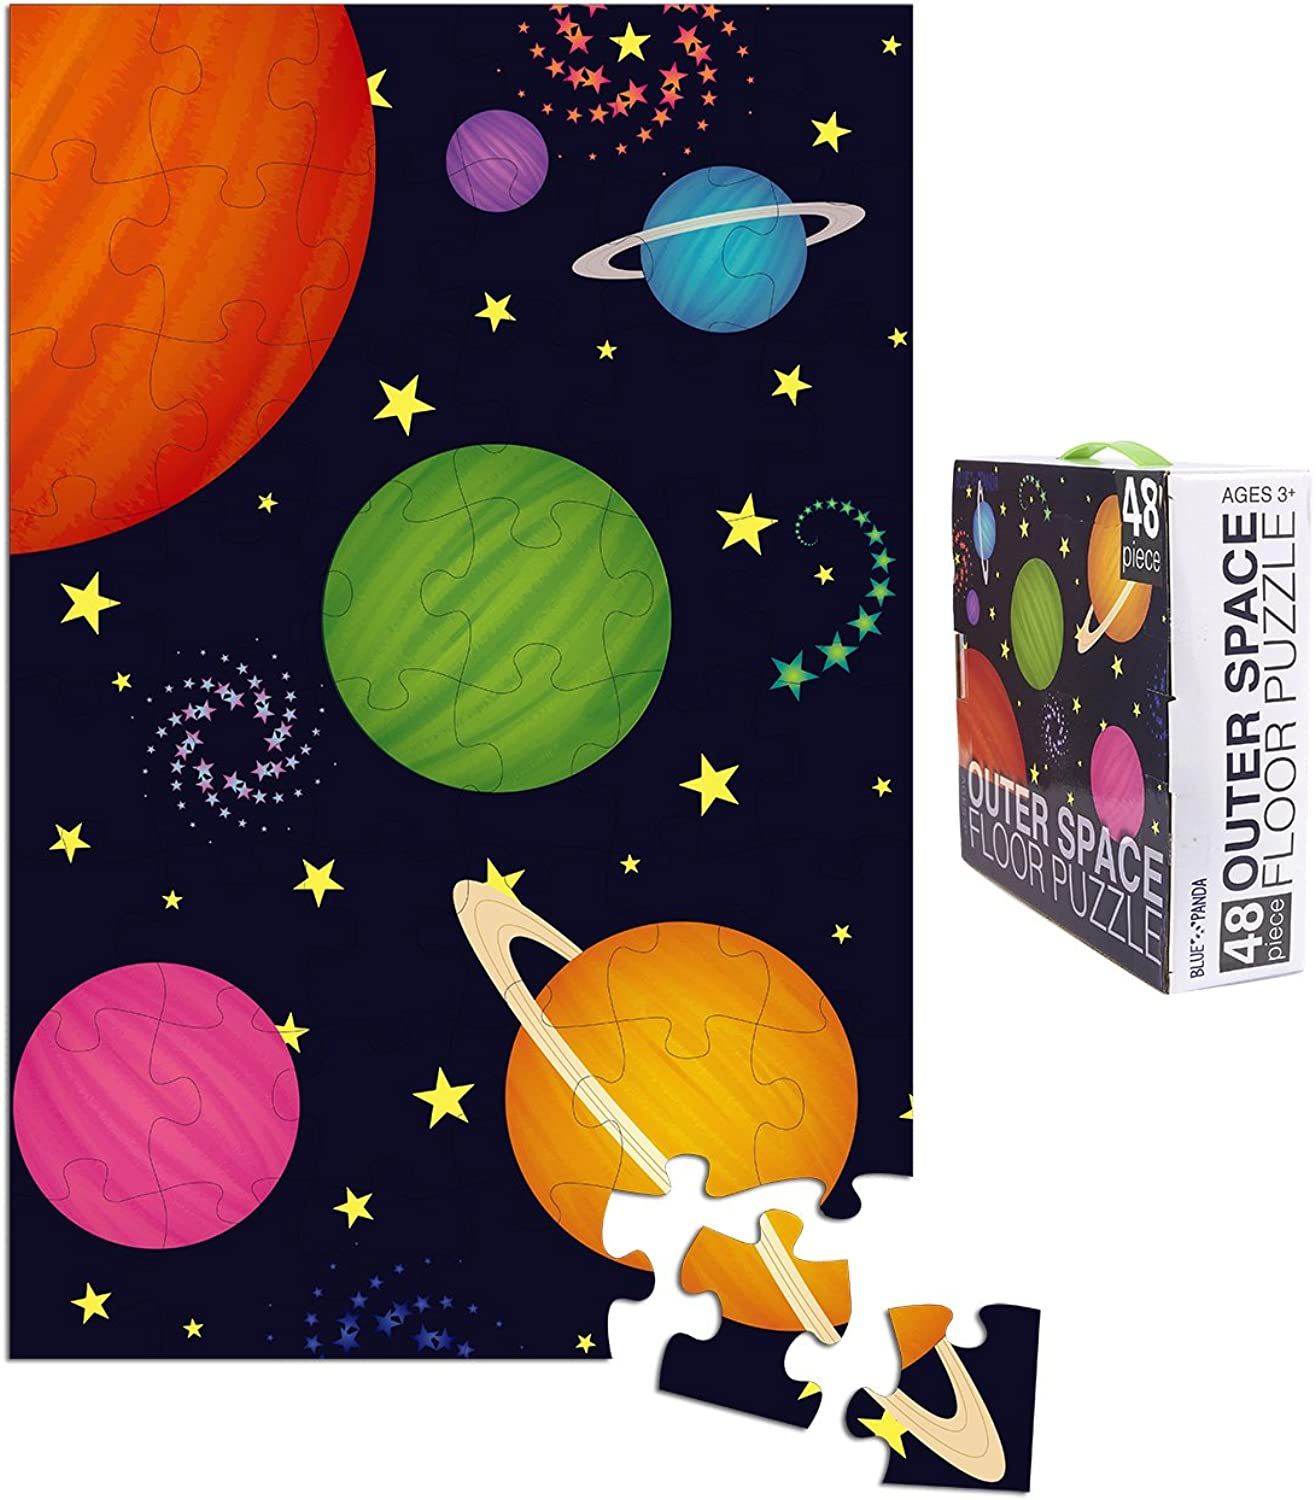 Floor Puzzles – 48 Piece Giant Floor Puzzle, Bugs and Insects Jumbo Preschool Jigsaw Puzzles, Toy Puzzles for Kids Ages 3-5, 1.9 x 2.9 Feet (Outer Space)